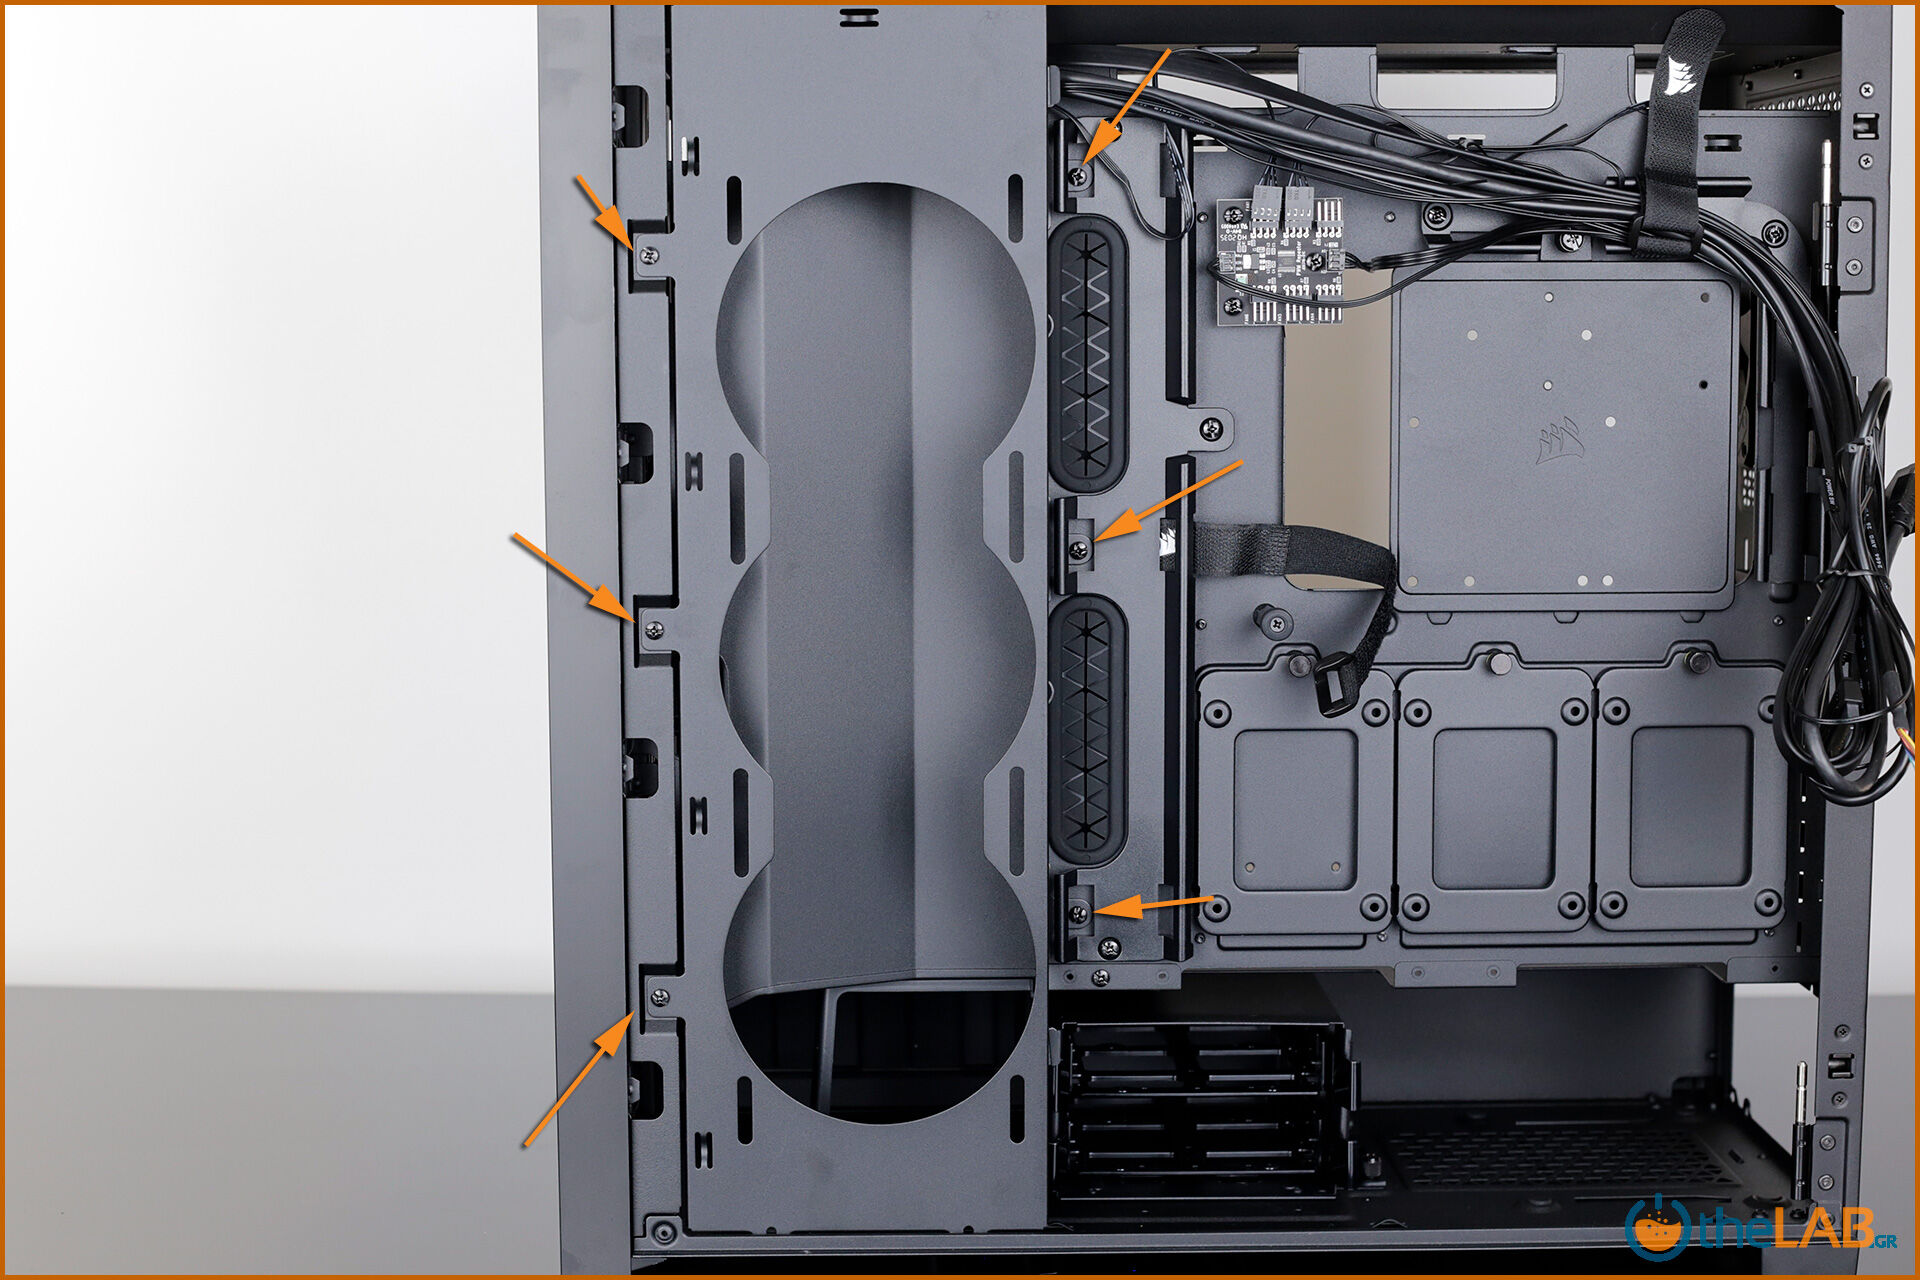 Corsair_icue_5000D__case_smart_exterior_interior_mid_tower_gaming_case_smart_review_image676.jpg